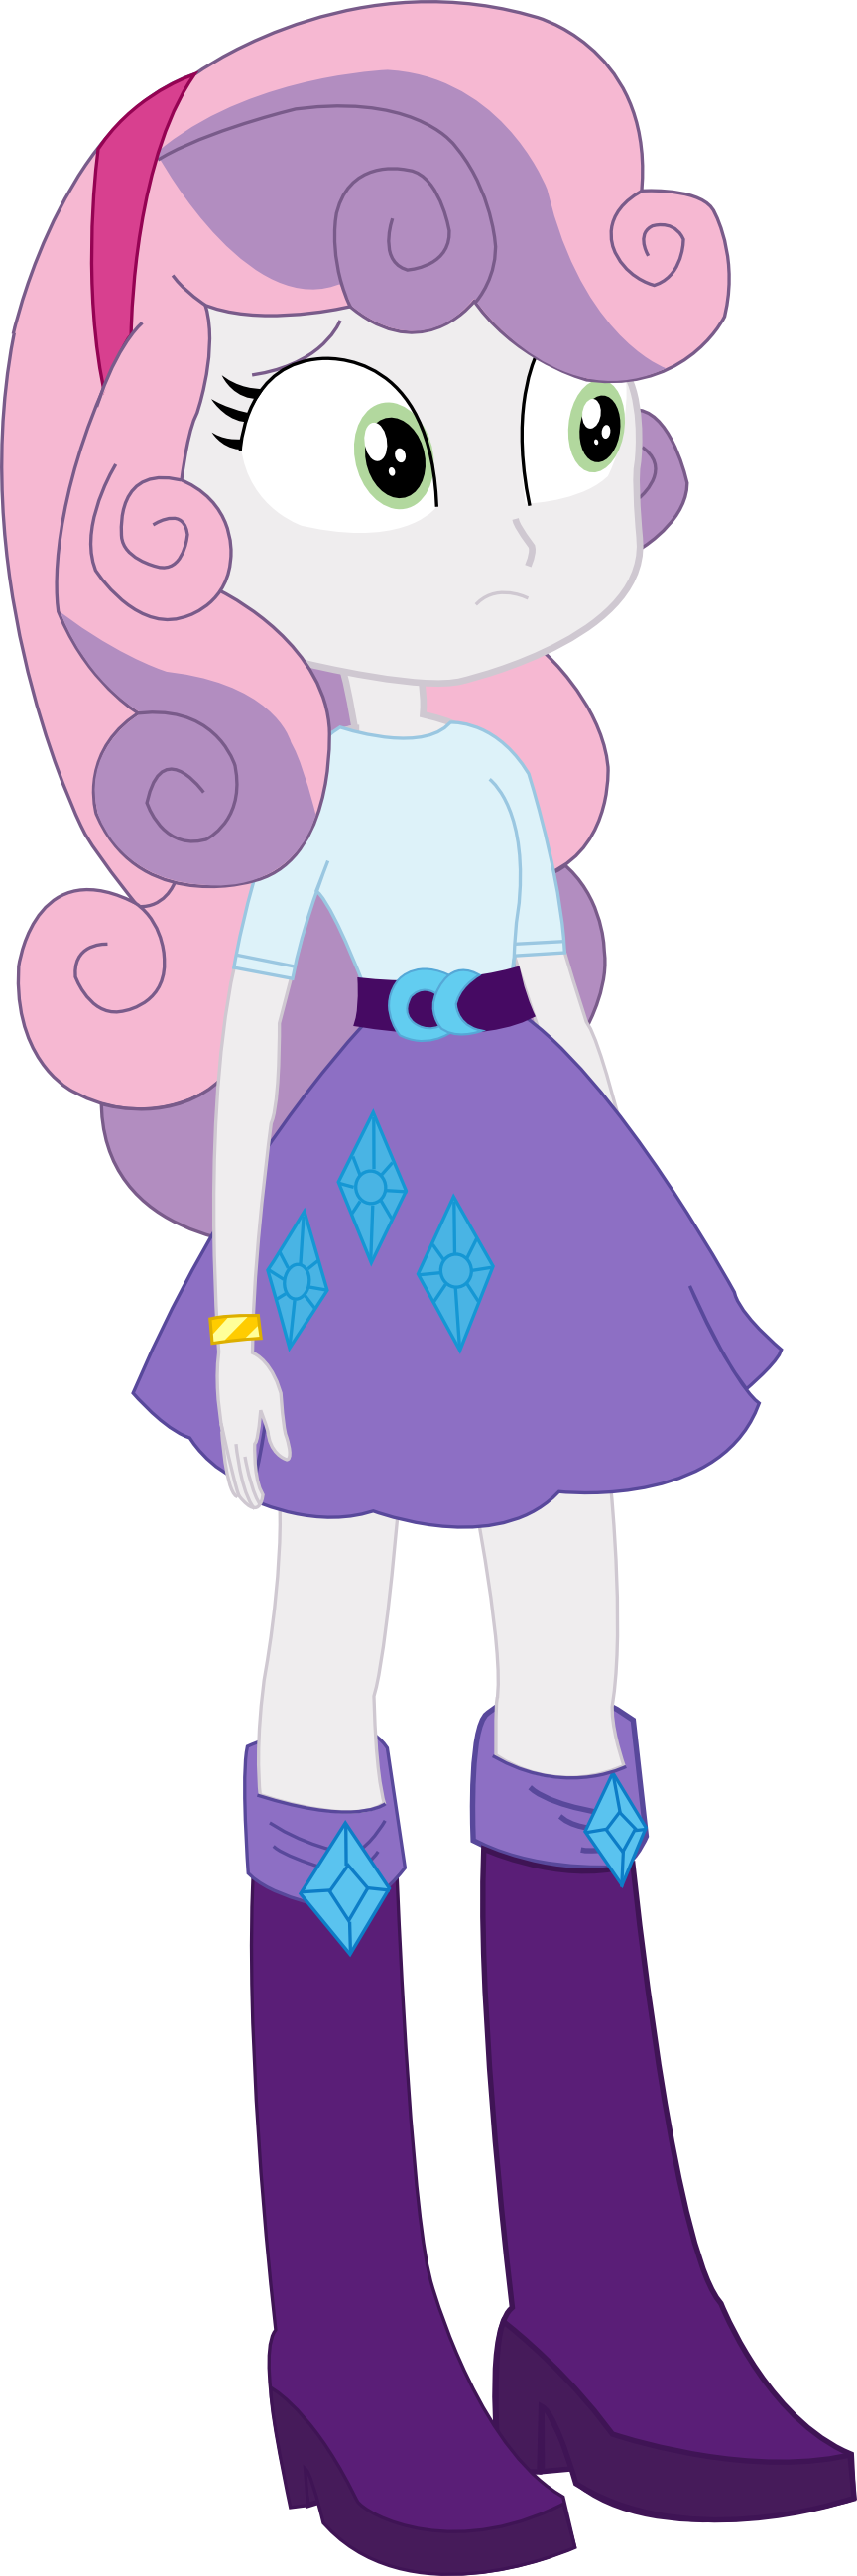 Equestria Girls Sweetie Belle Rarity 39 S Clothes By Sketchmcreations On Deviantart